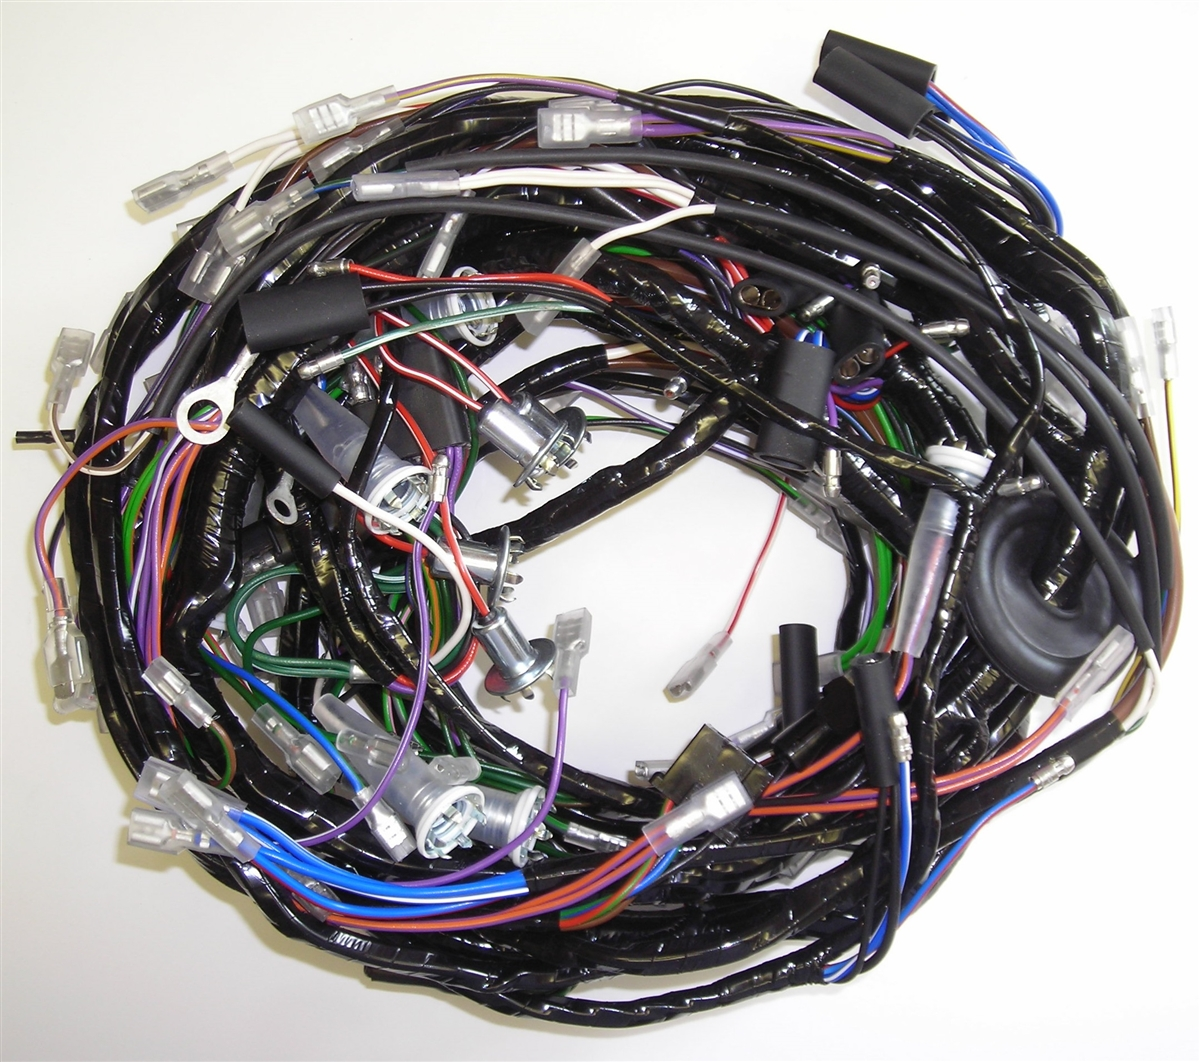 892 2?1337598720 wiring harness triumph tr6 tr6 wiring harness at creativeand.co